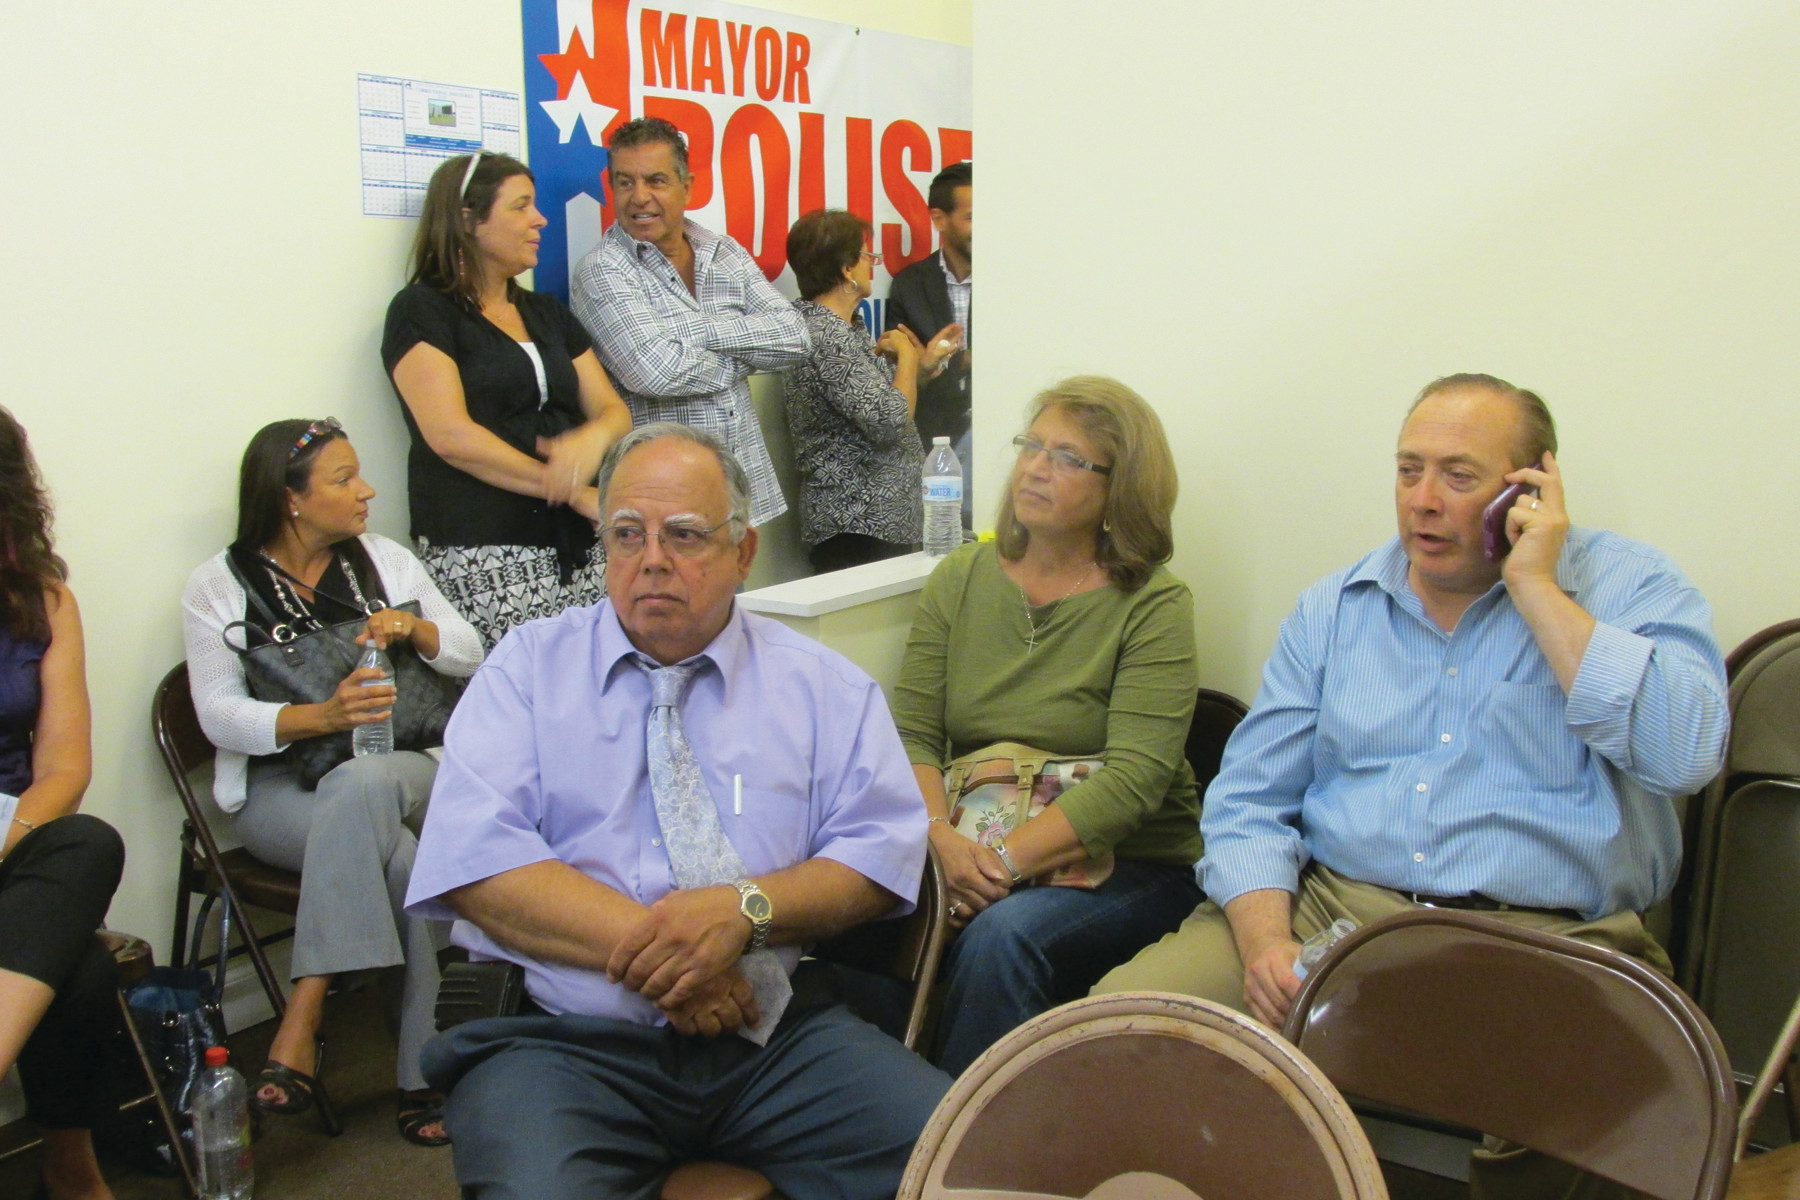 LOOKING ON: Town Councilman David Santillli, left, awaits the result of Tuesday's primary election.